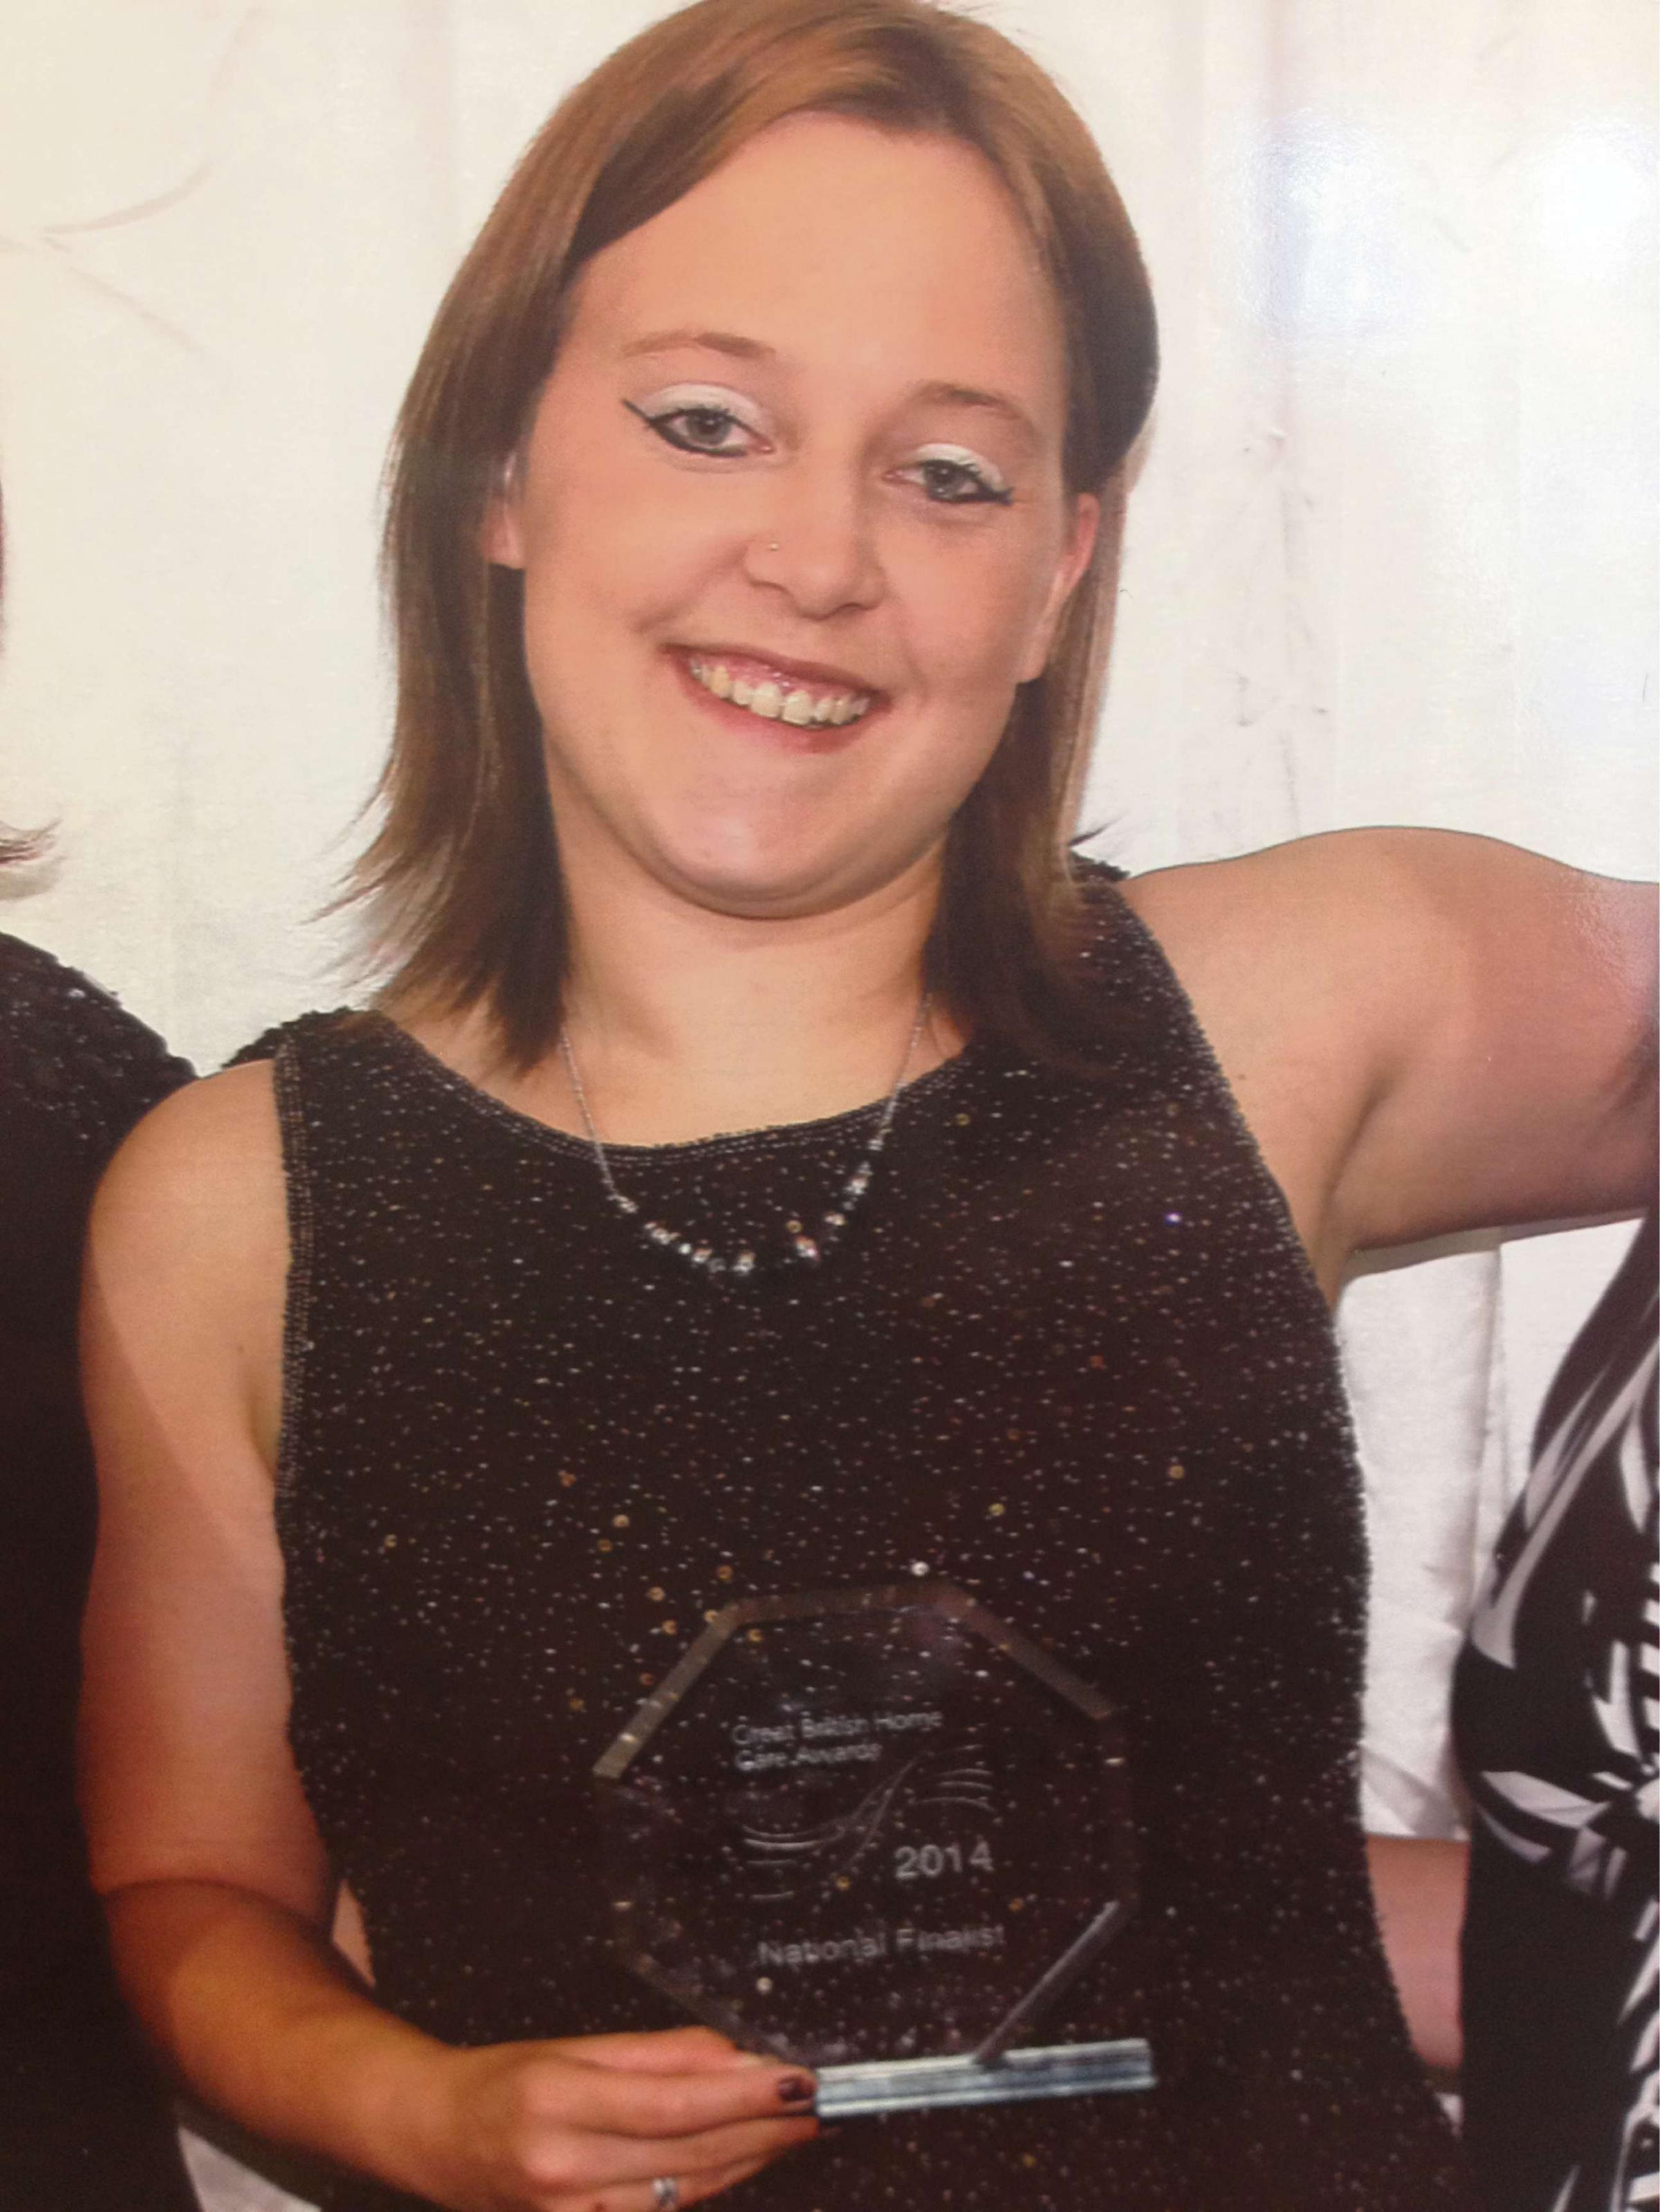 Herefordshire carer scoops runner-up prize at National Home Care Awards